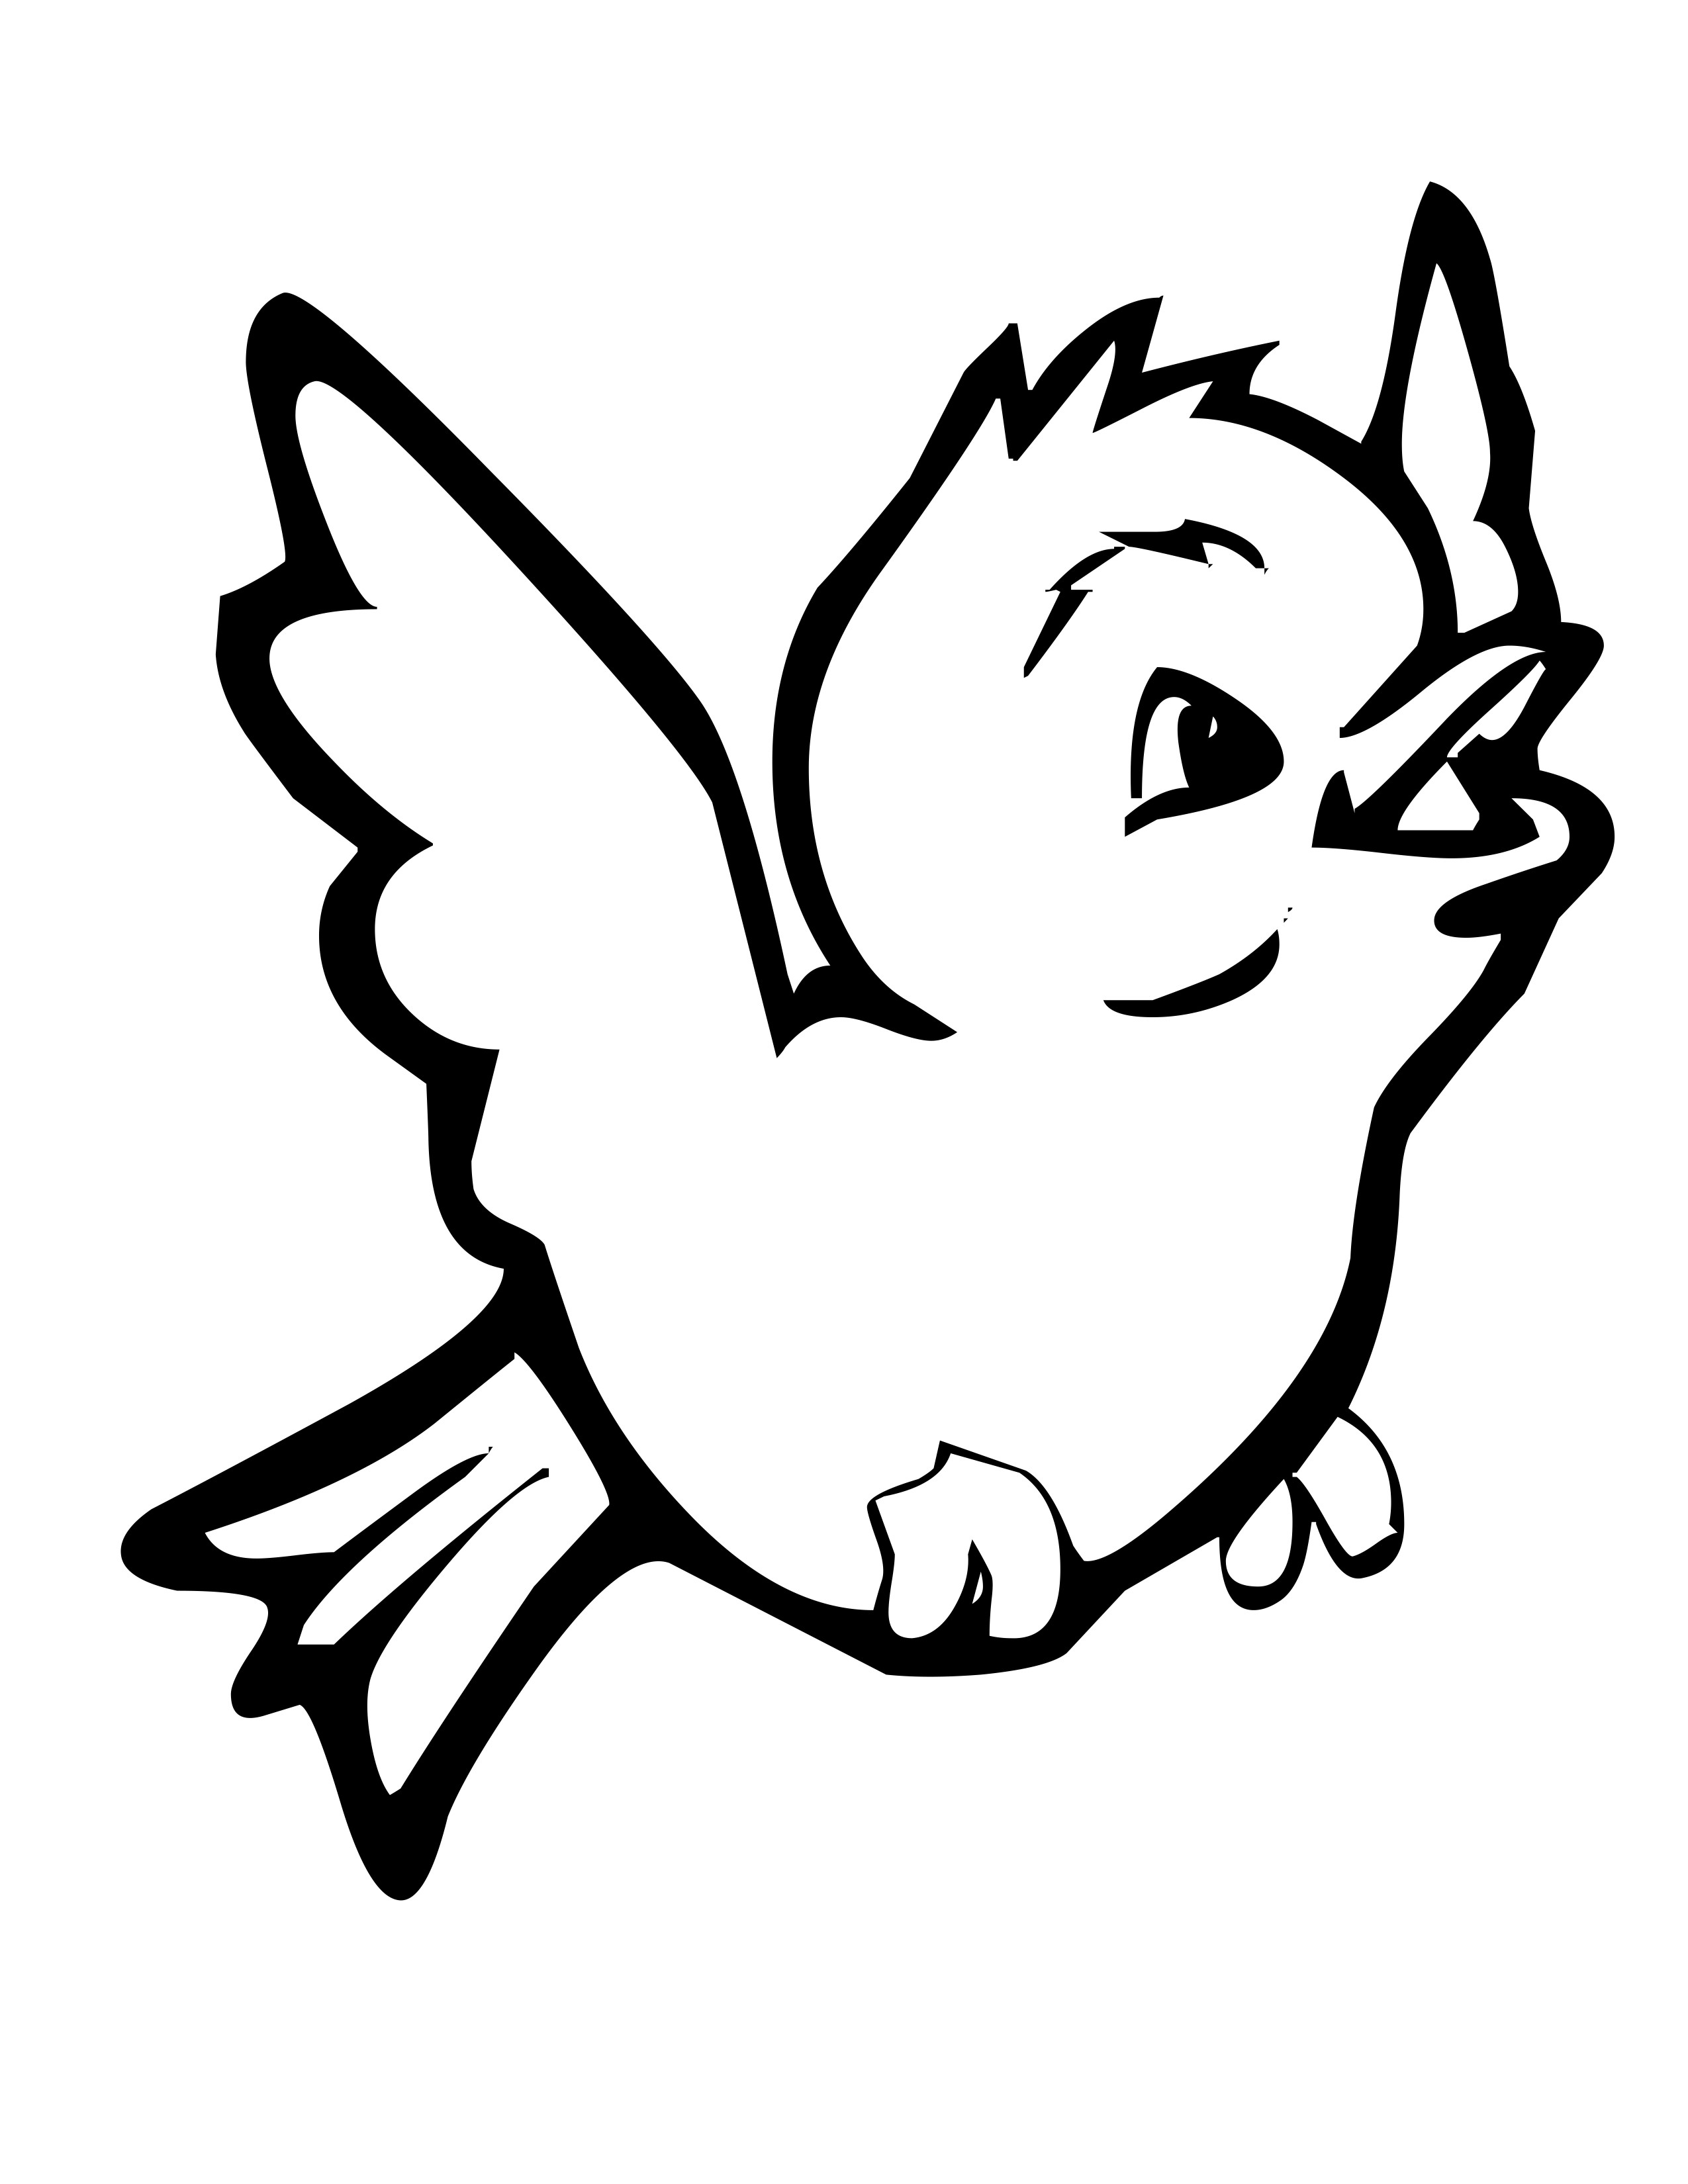 bird colouring pages for kids birds for kids birds kids coloring pages kids for pages bird colouring